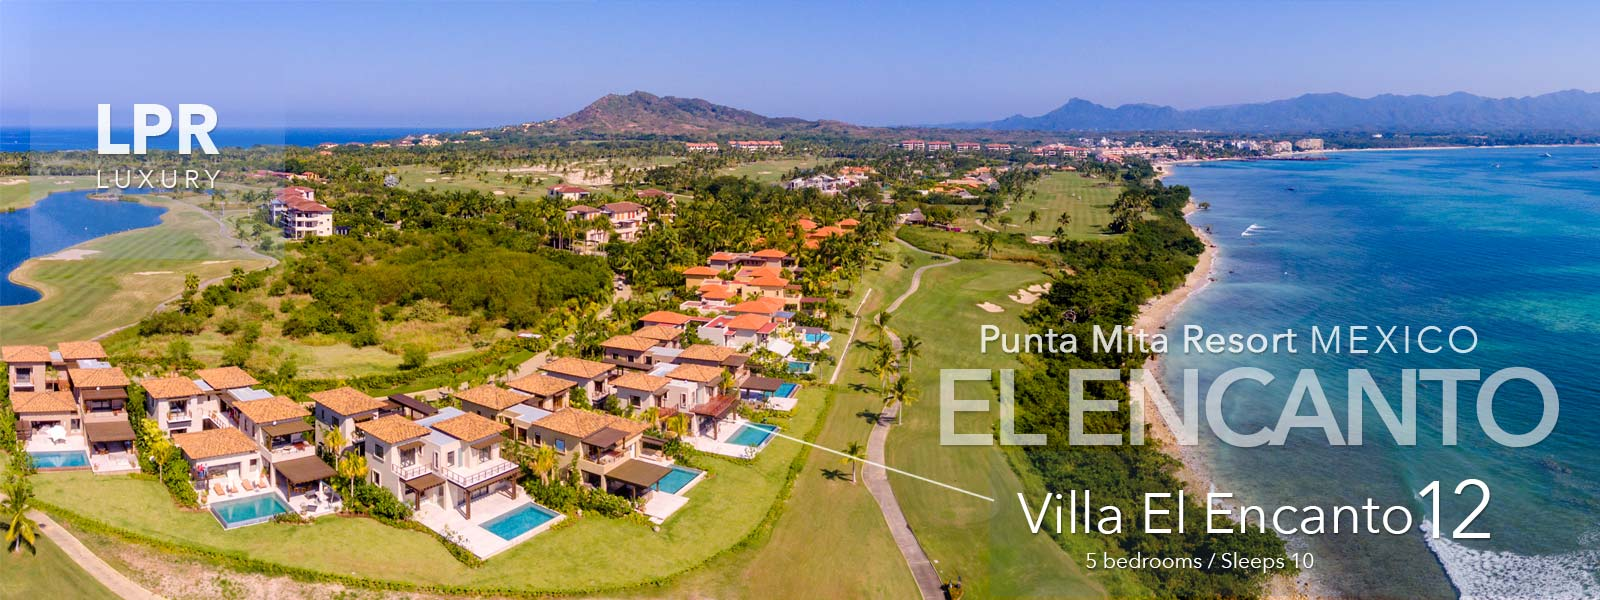 Villa El Encanto 12 - Luxury Real Estate for sale at the Punta Mita Resort, Mexico